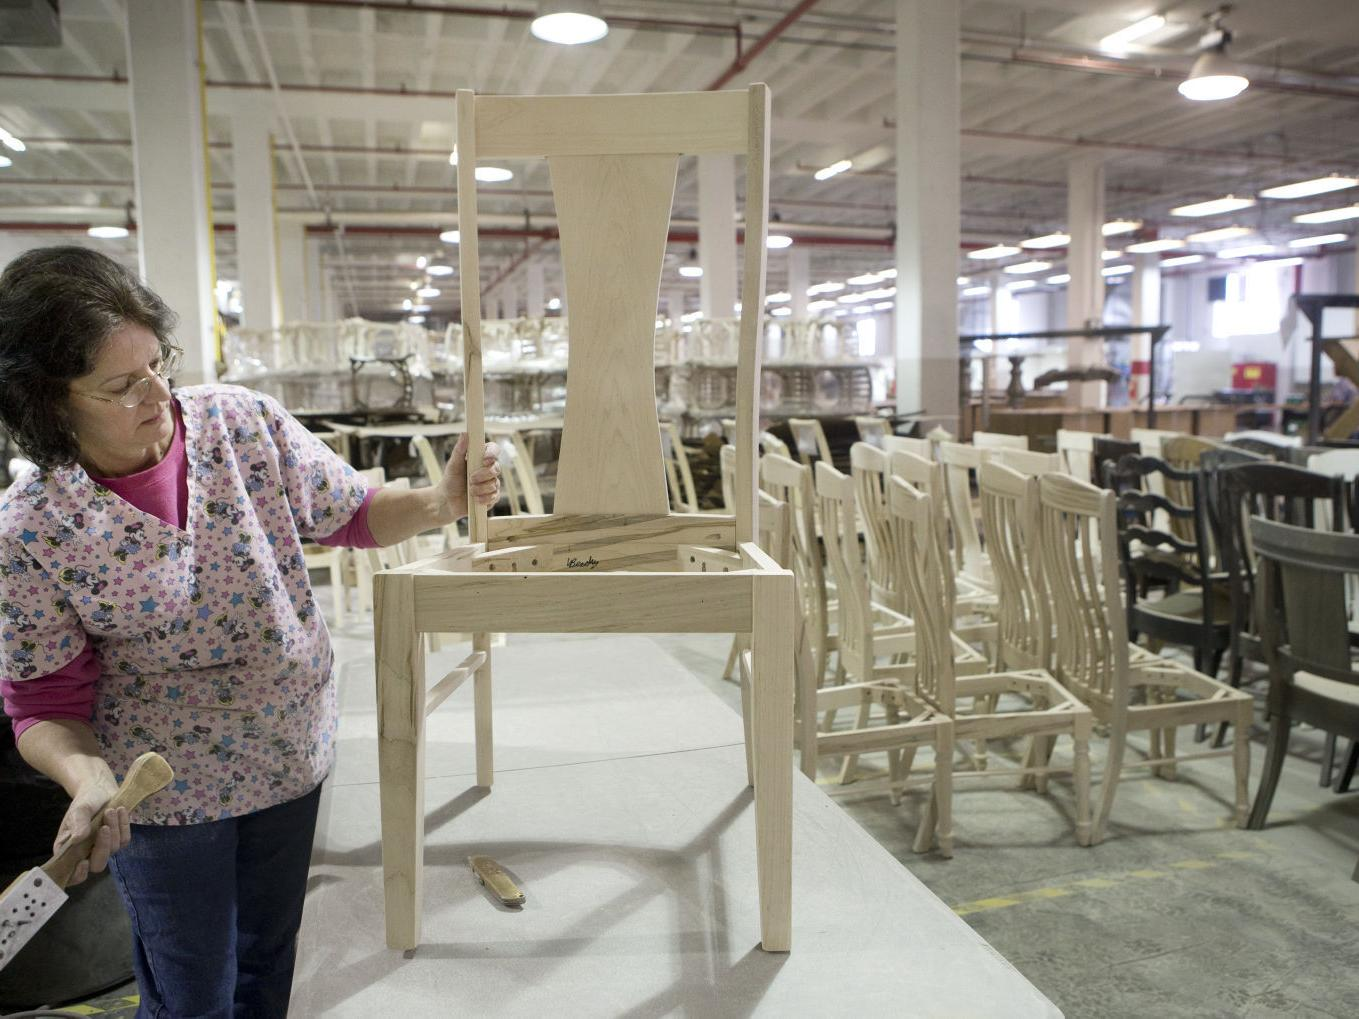 Bassett Furniture Rebounds Business News Roanoke Com